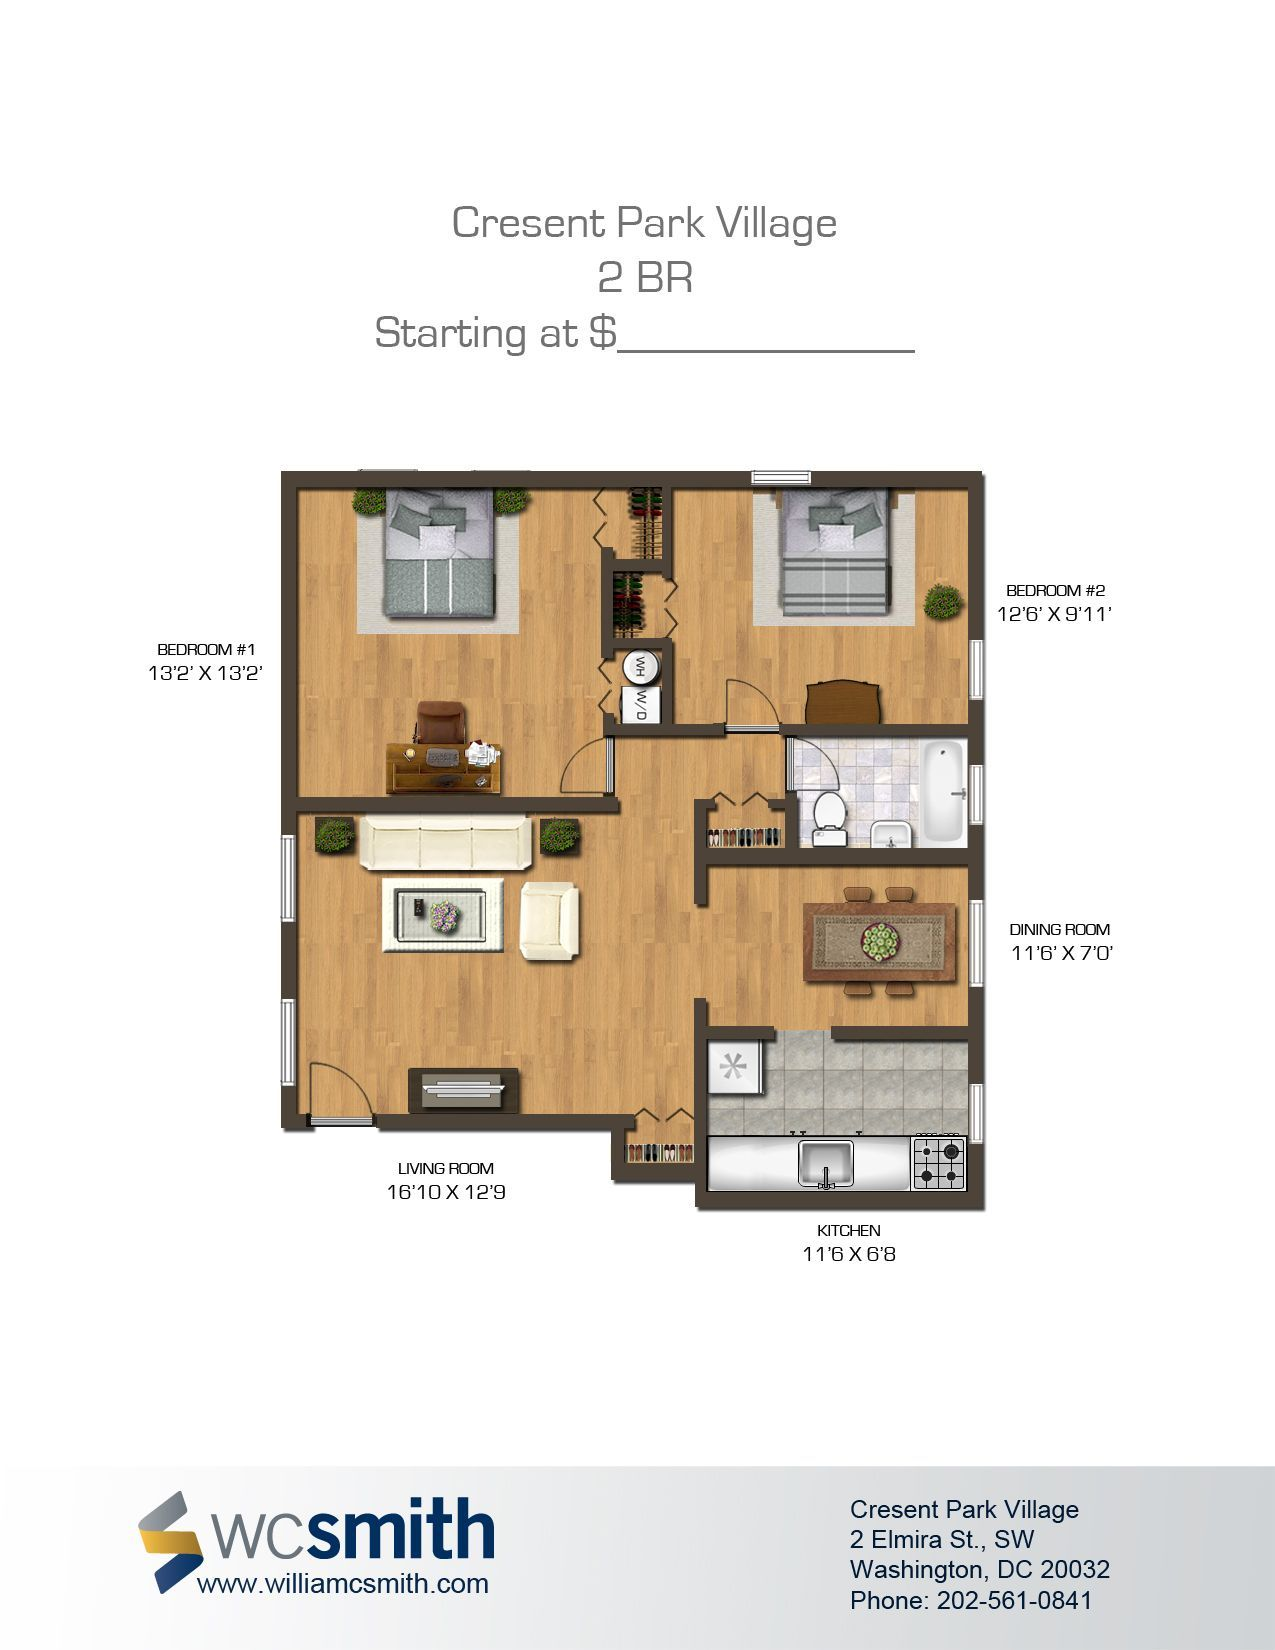 Two Bedroom Floor Plan Crescent Park Village in